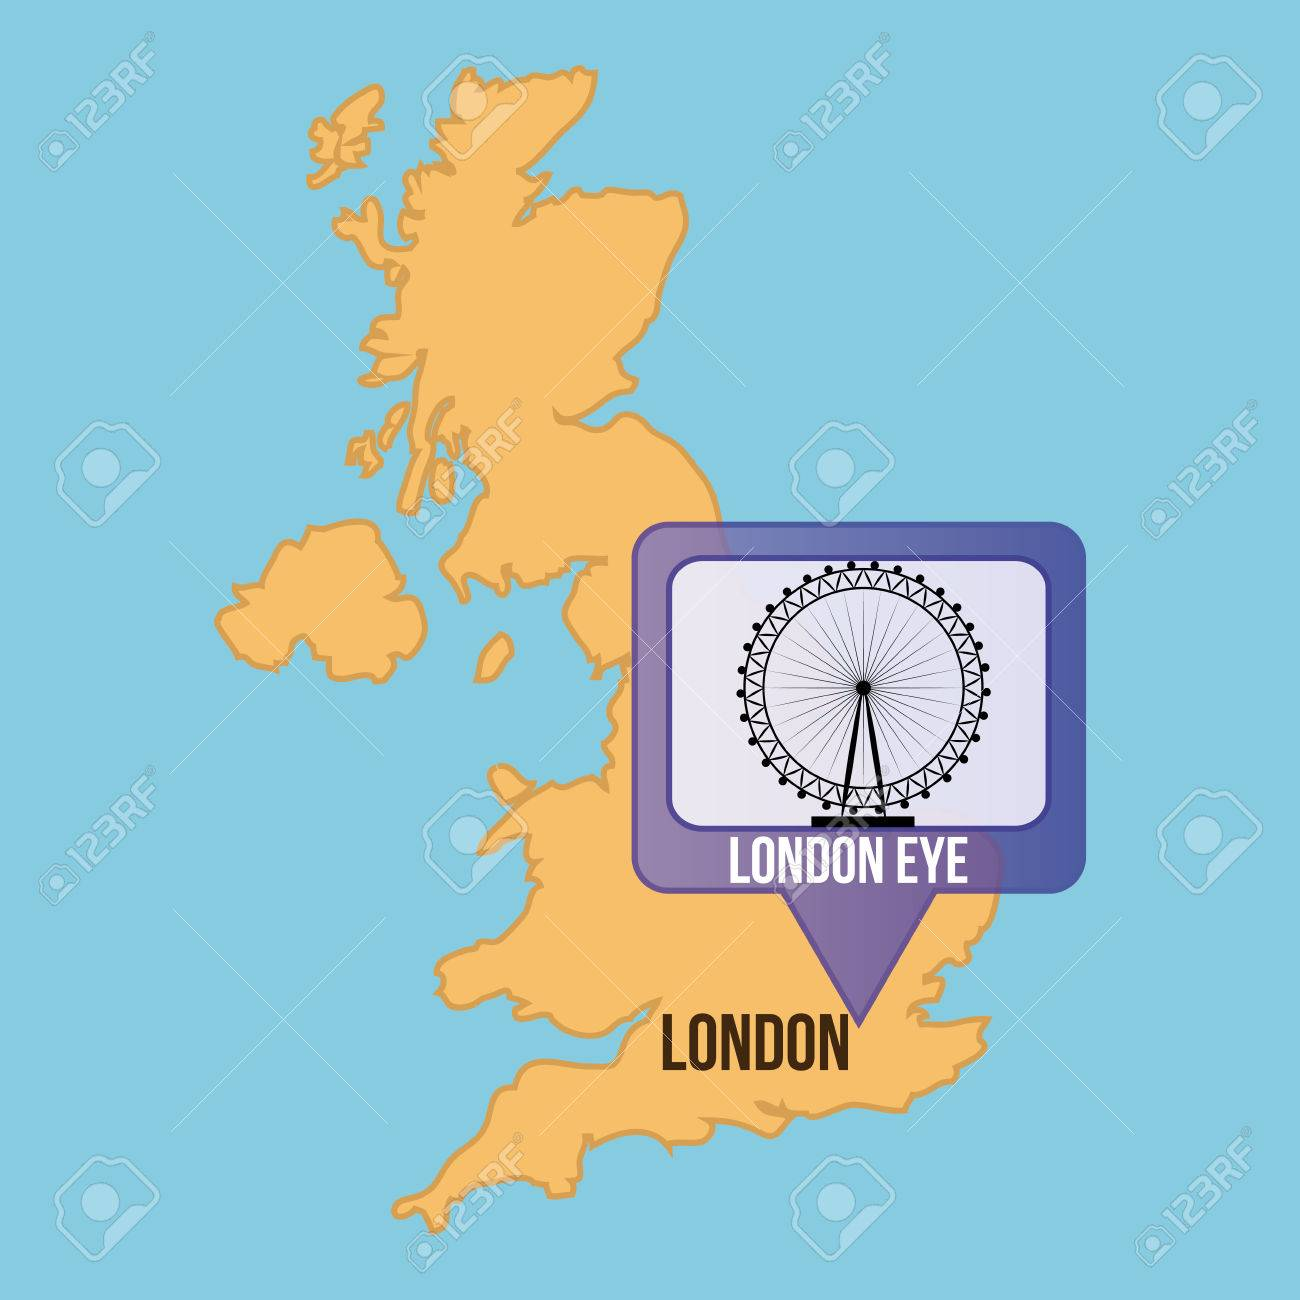 London On The Map Of England.Isolated Map Of England With The London Eye Vector Illustration